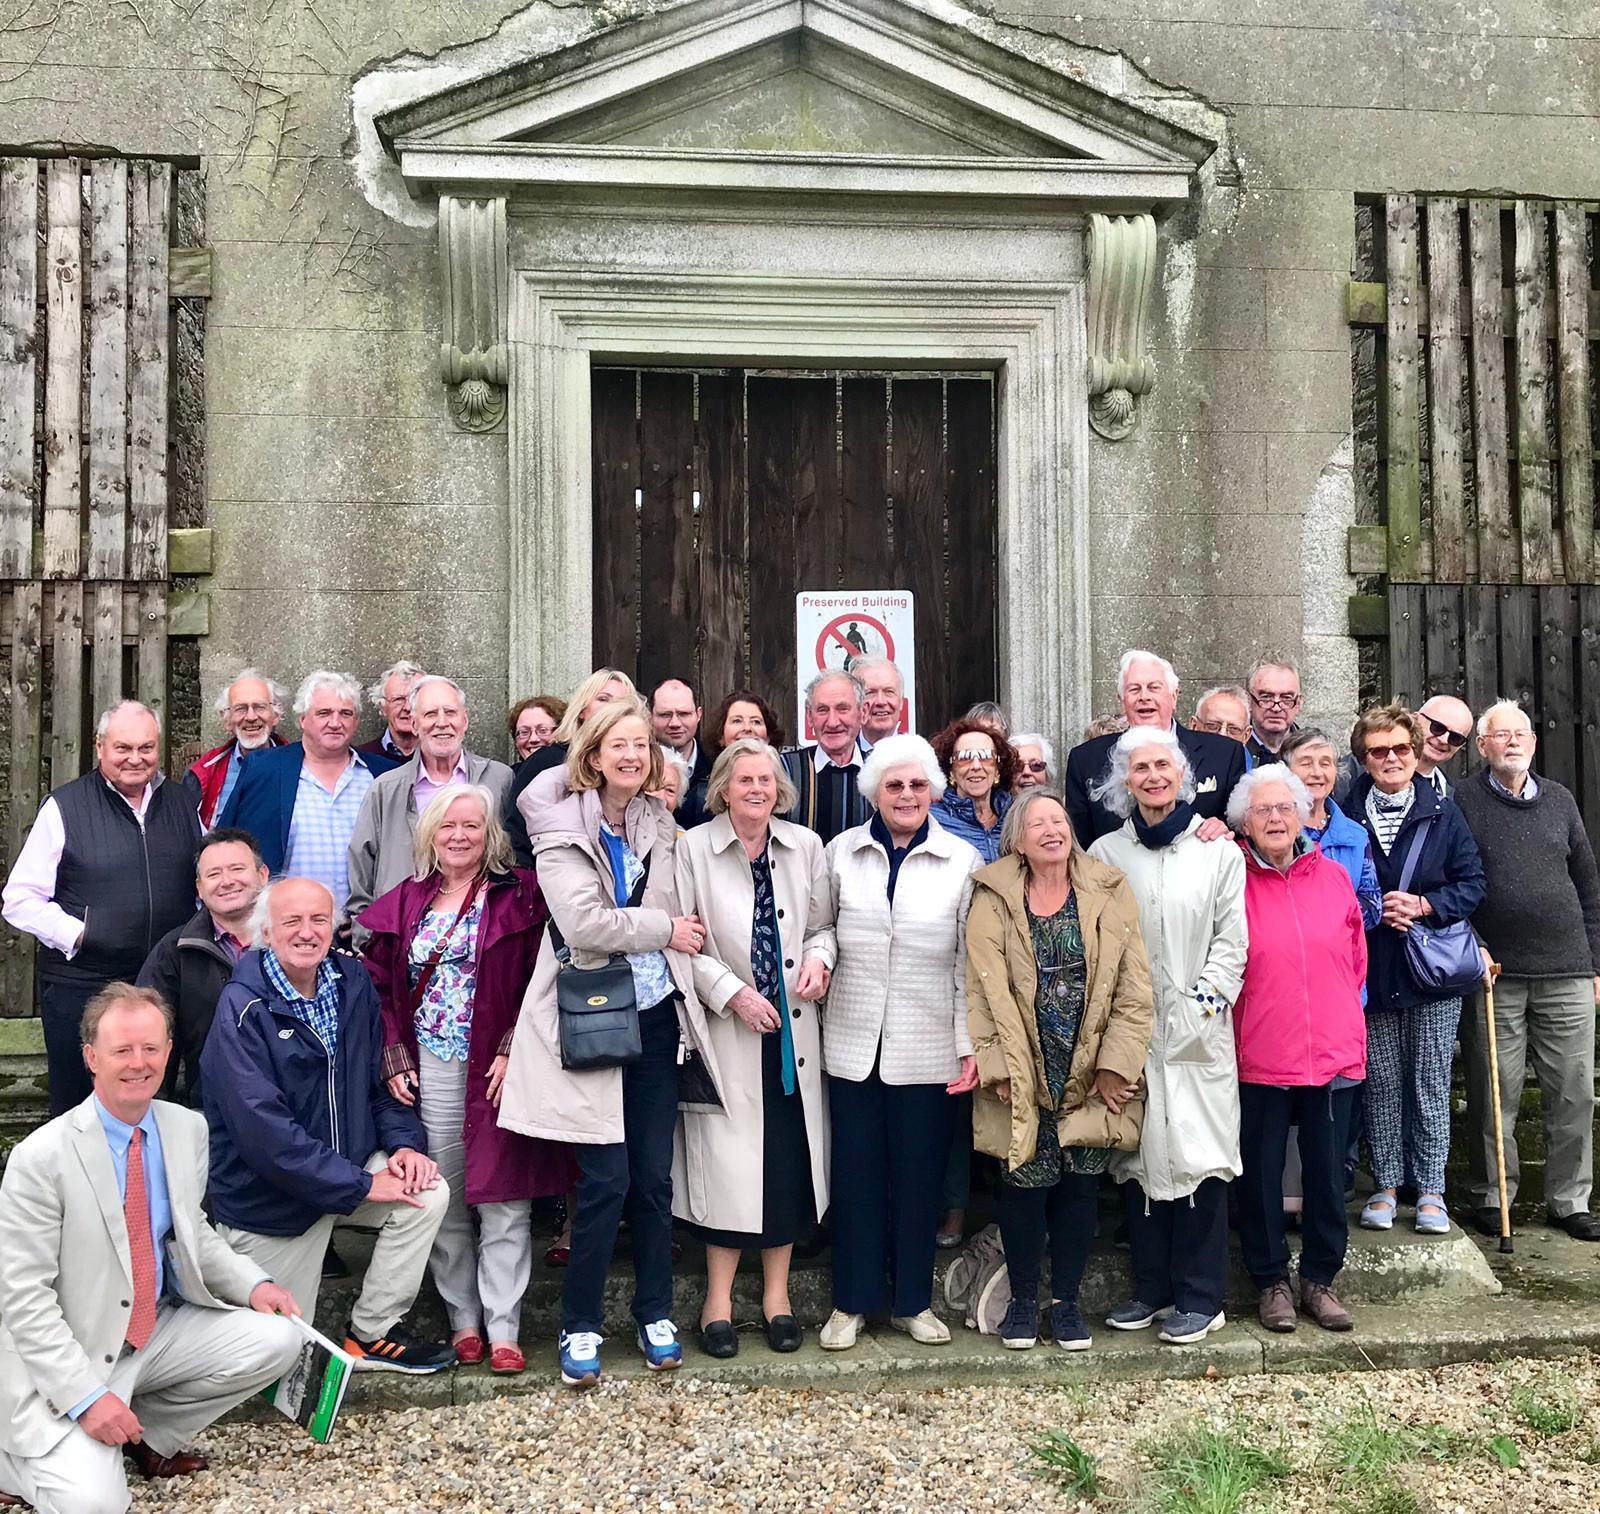 Wexford-Picnic-Tour-Group-Shot-Courtesy-of-Mary-OLeary.jpg#asset:13205